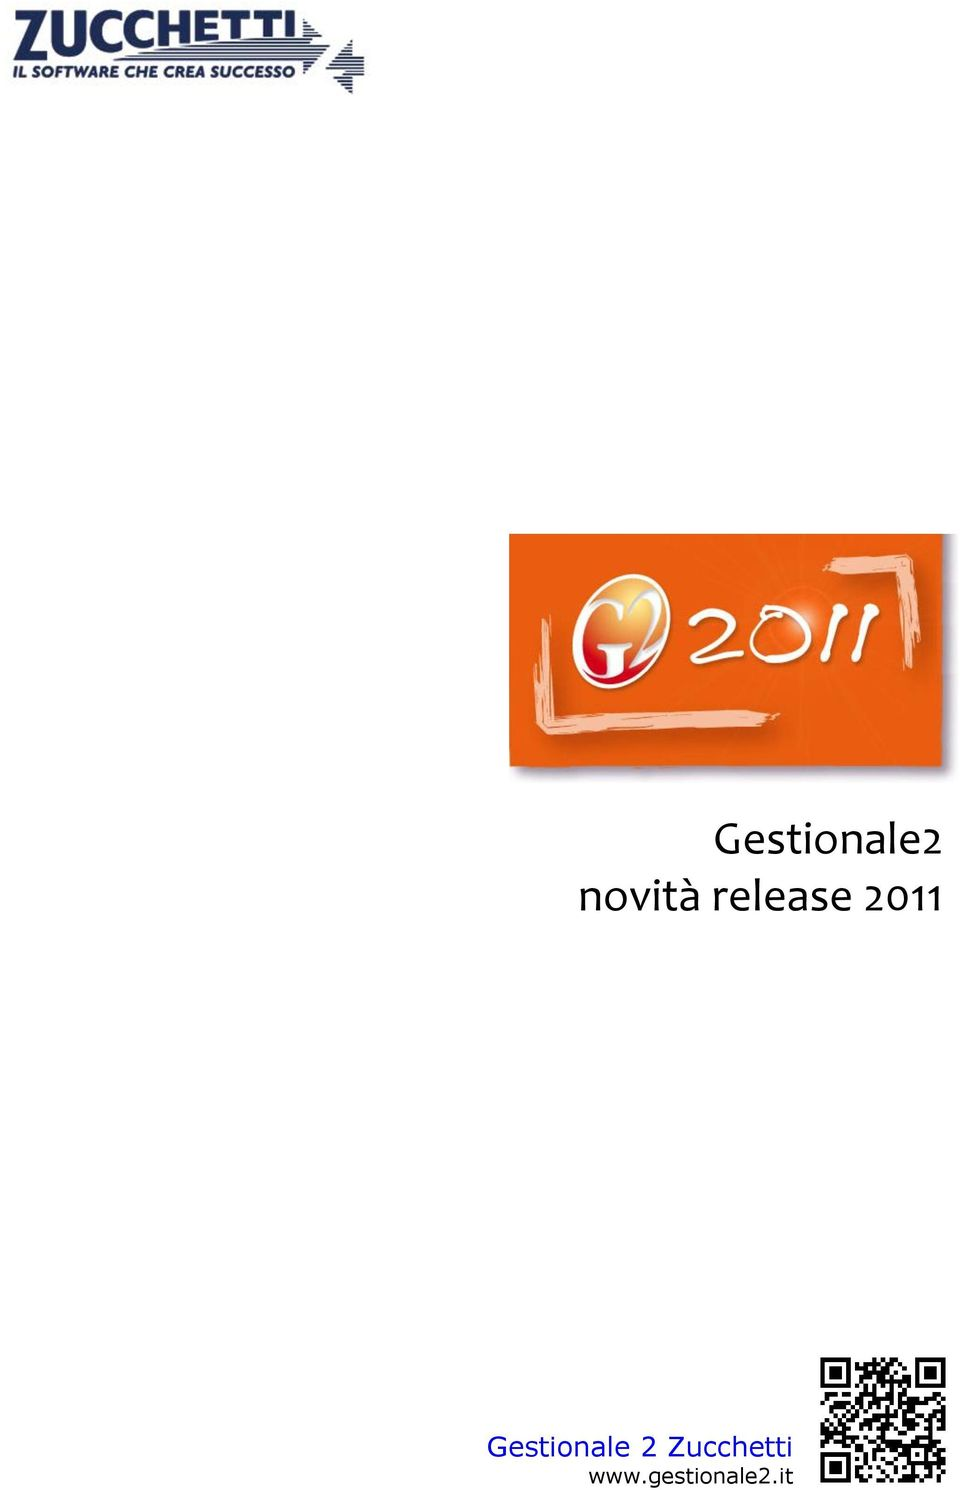 Gestionale 2